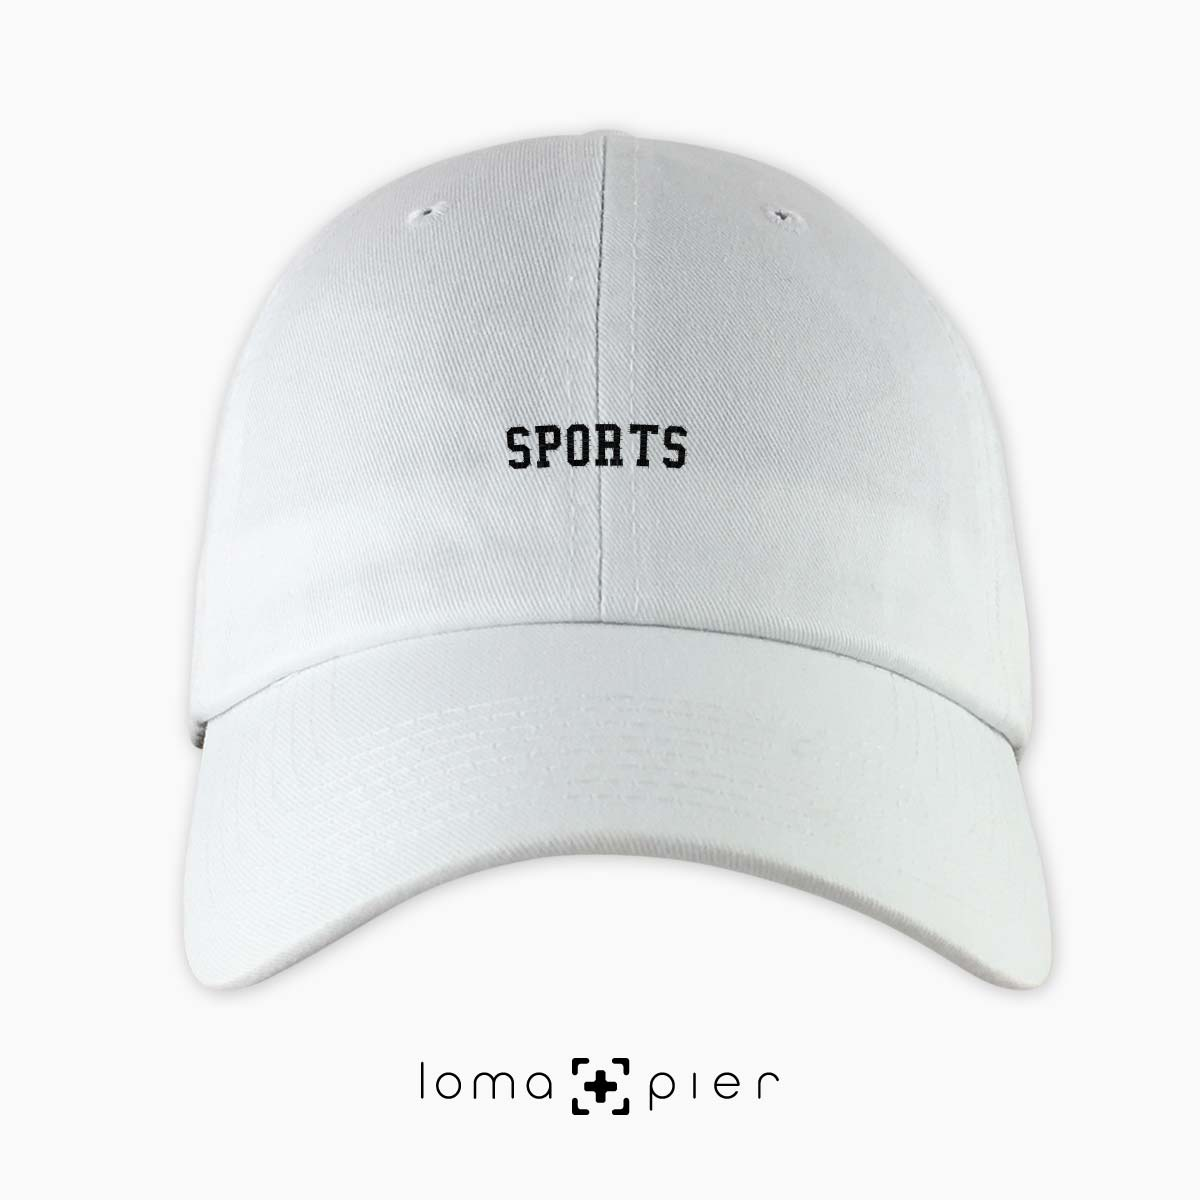 SPORTS dad hat by the loma+pier hat shop